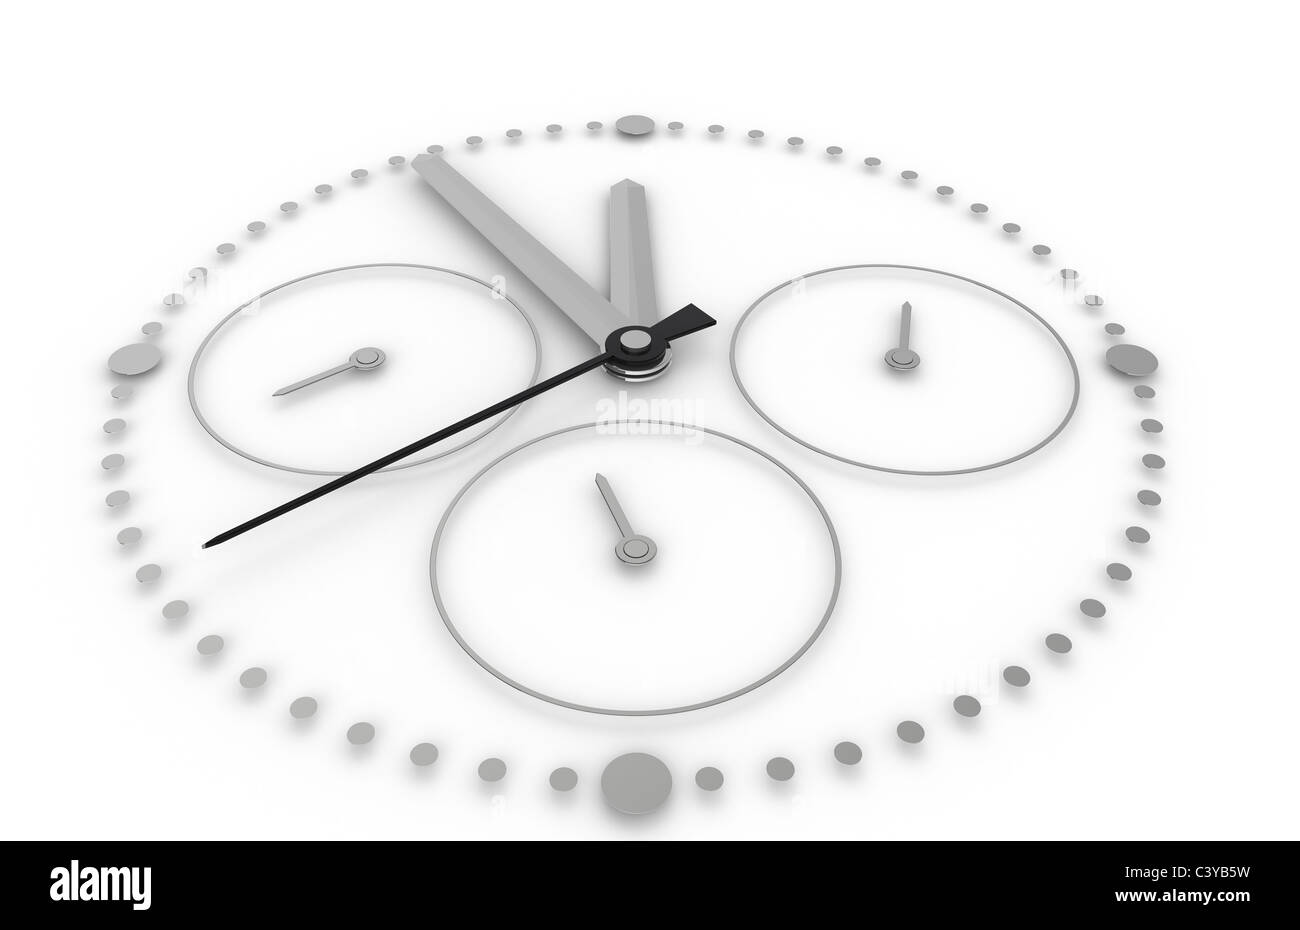 Time. Closeup on a Chronograph Watch - Stock Image